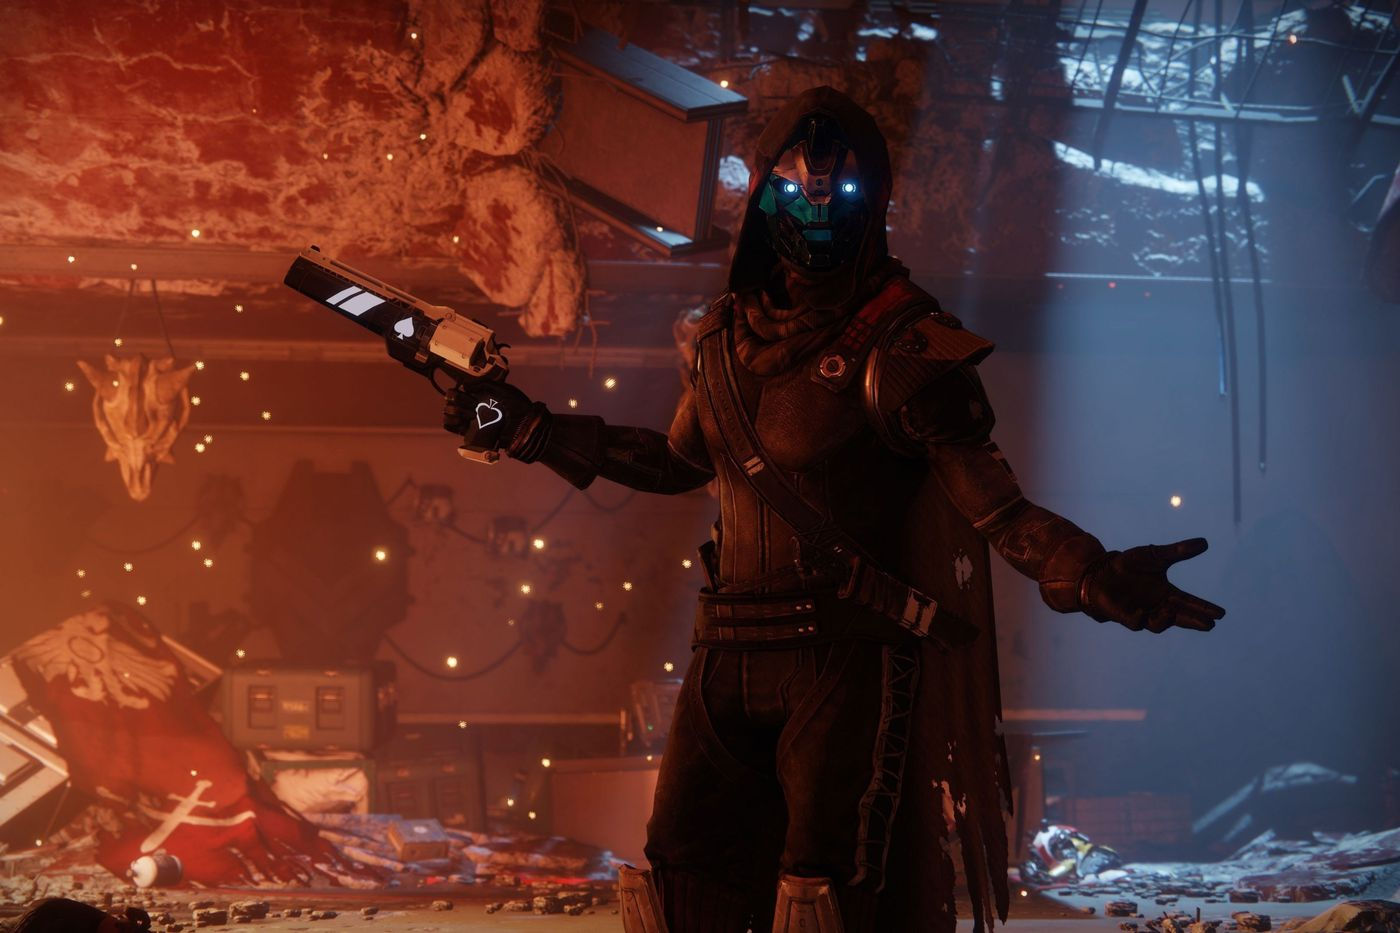 Here s what s to come for Destiny 2 in the next year-plus